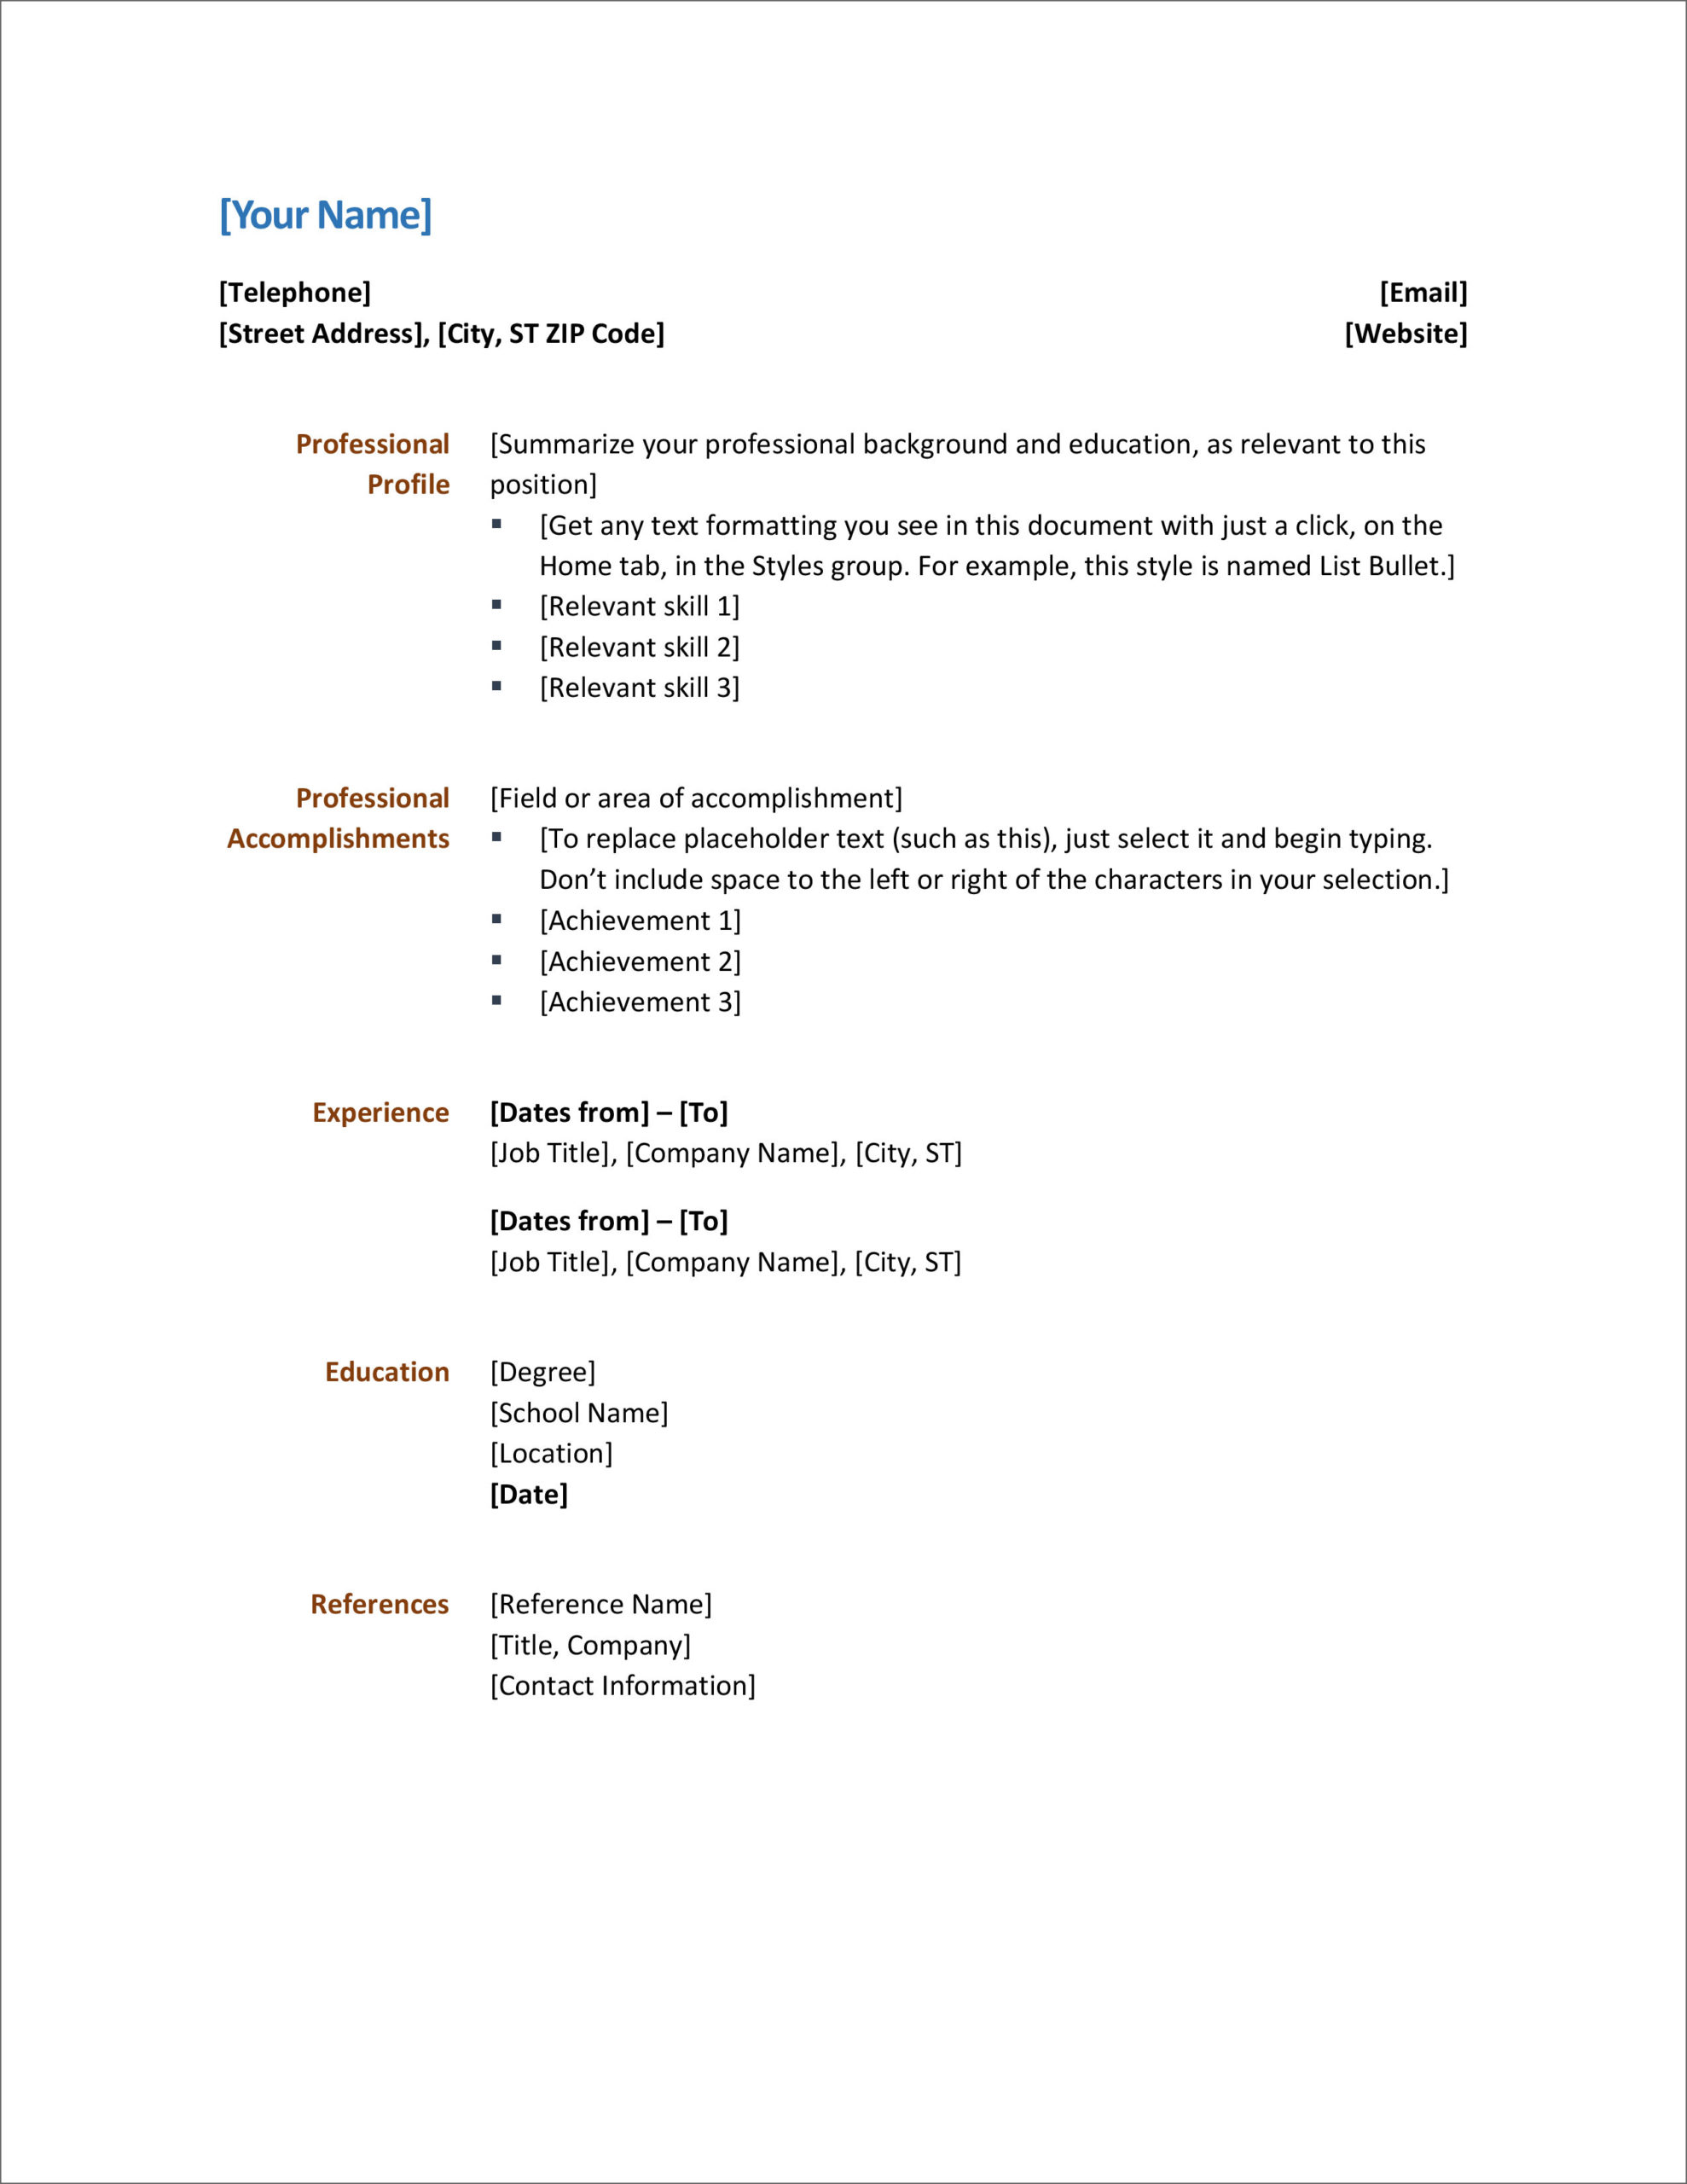 resume microsoft cv template form sample for new graduates another name foundation Resume Resume Contact Information Format